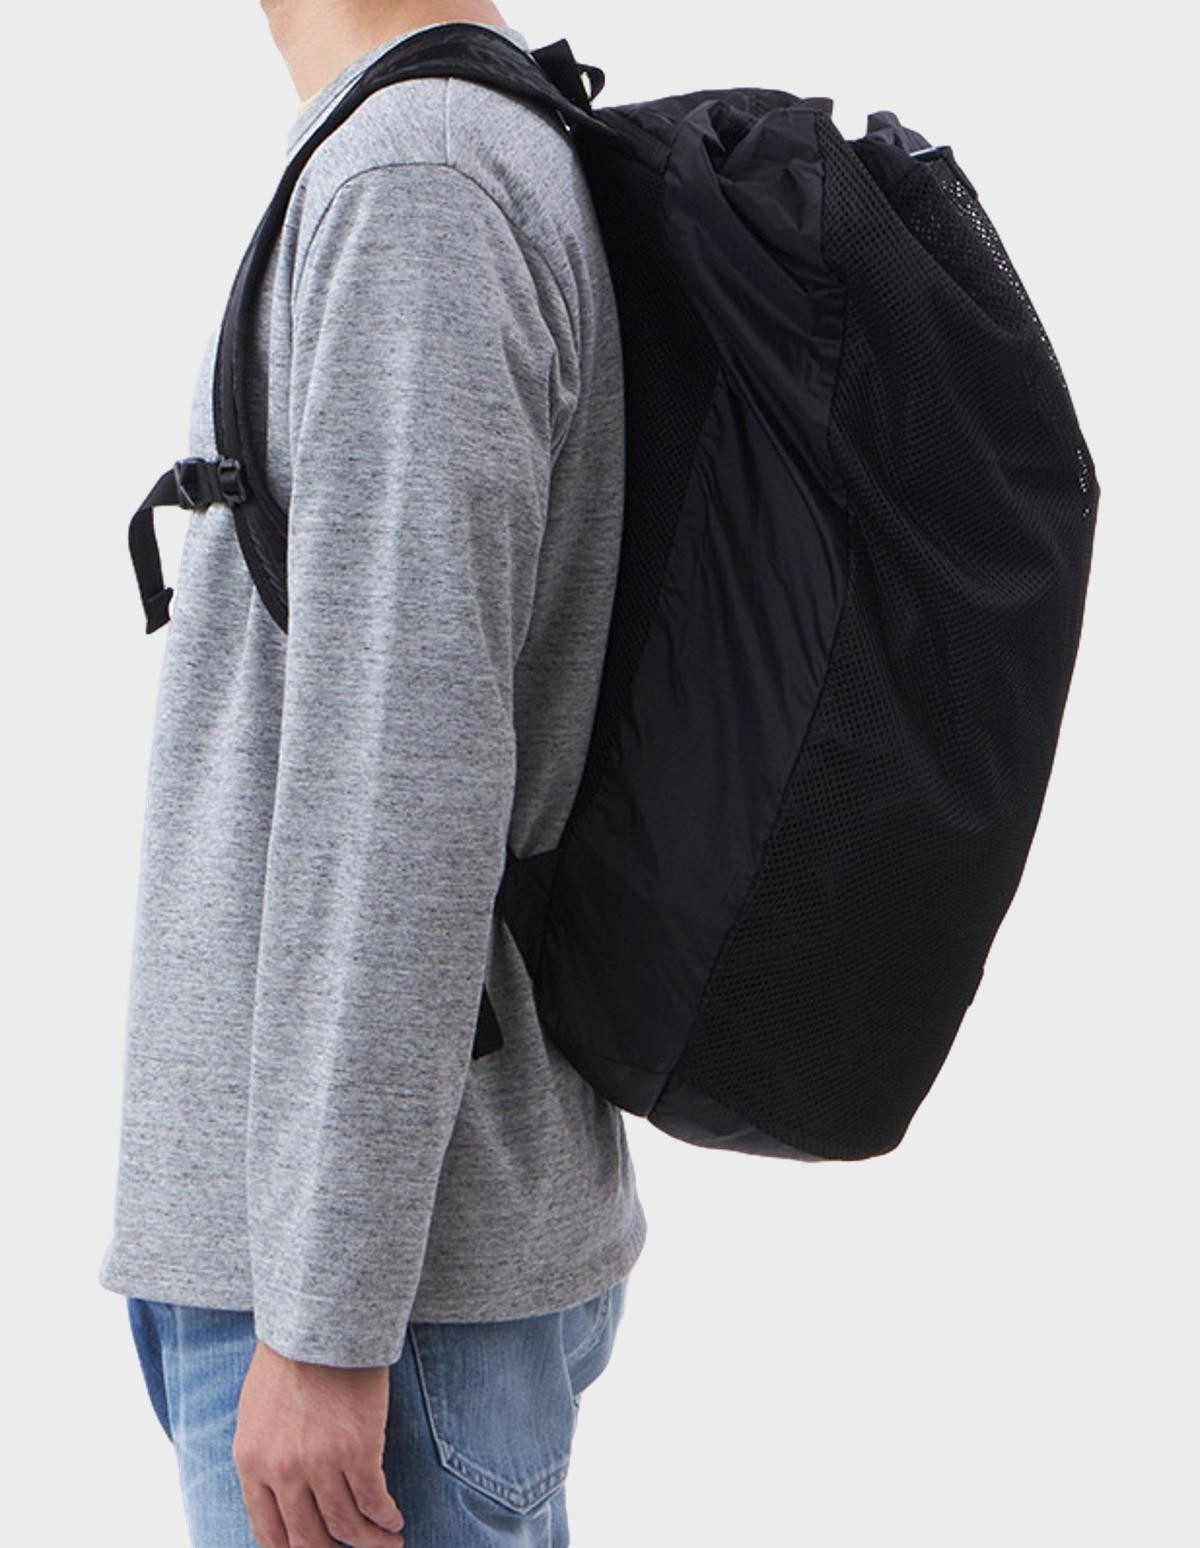 Nanamíca Packable Mesh Day Pack in Black